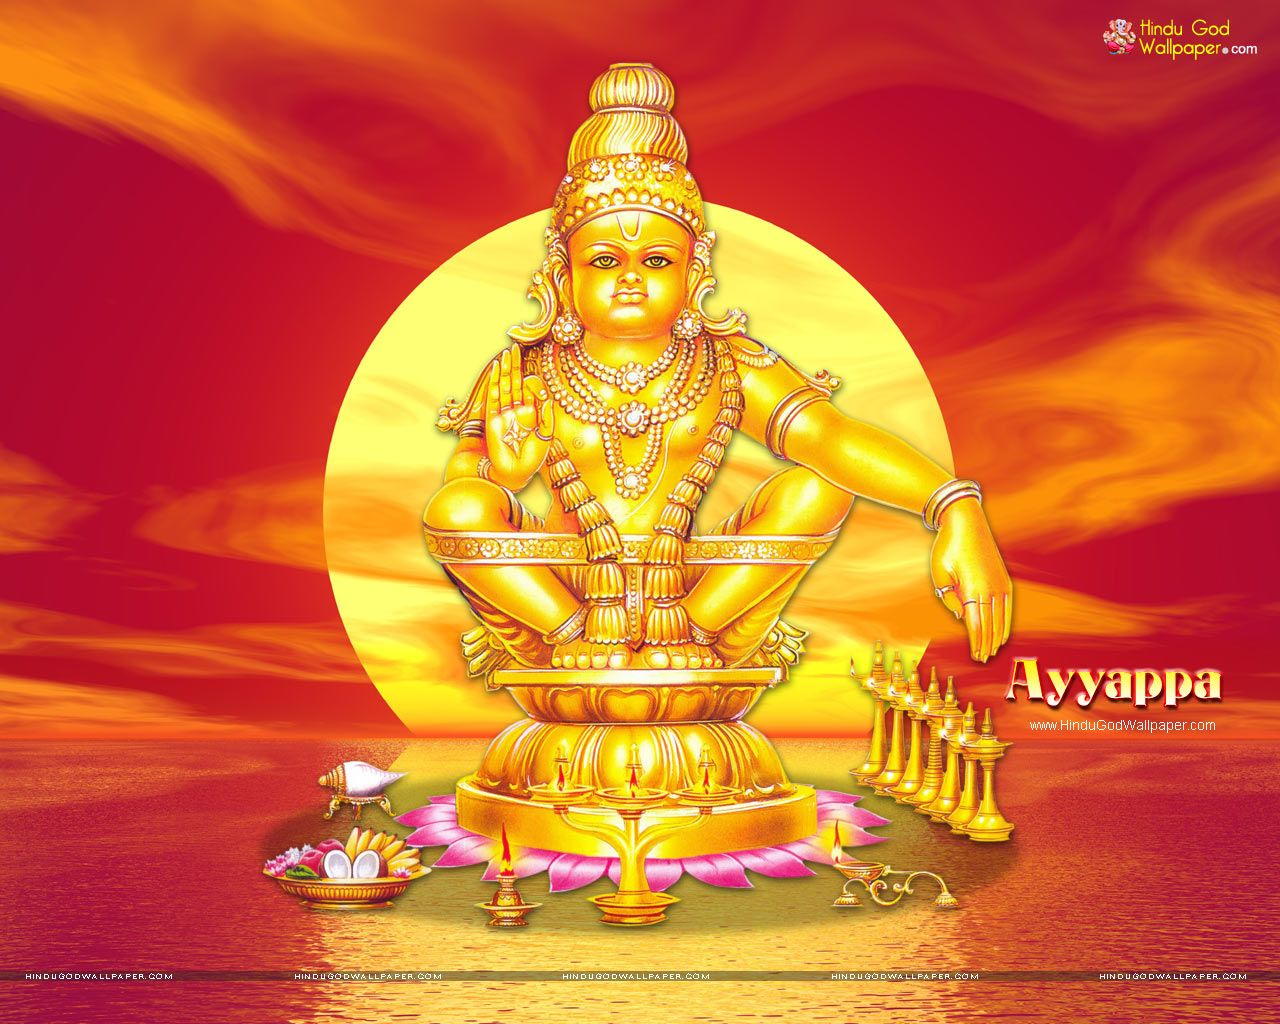 Lord Ayyappa Hd Wallpapers Lord Murugan Wallpapers Ganesha Pictures Wallpaper Free Download